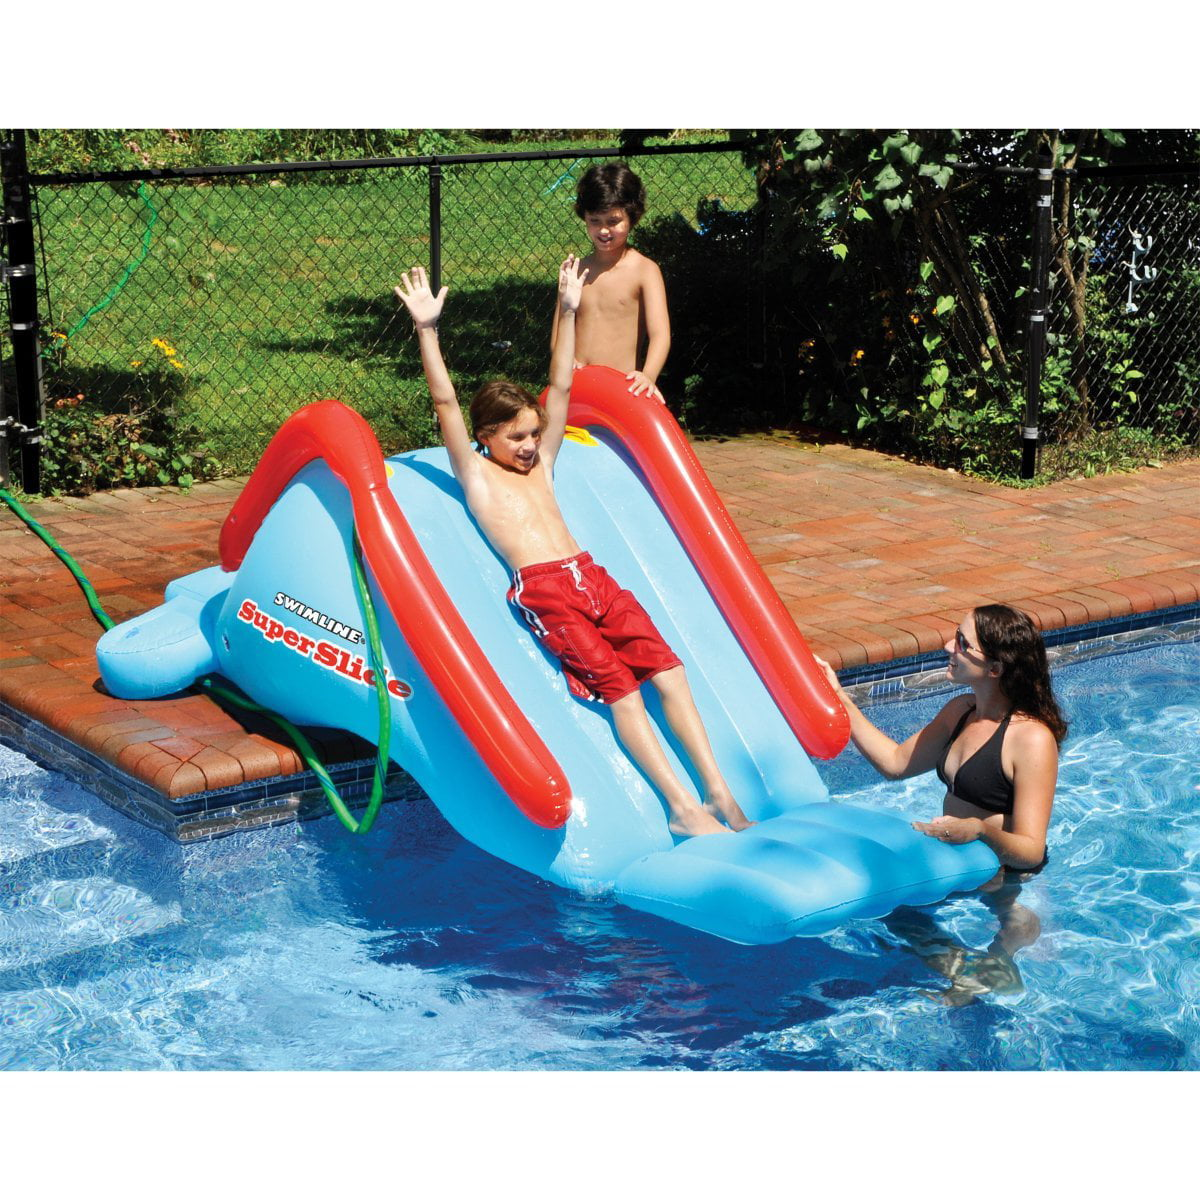 Swimline SuperSlide Inflatable In Ground Pool Water Slide by - Walmart.com